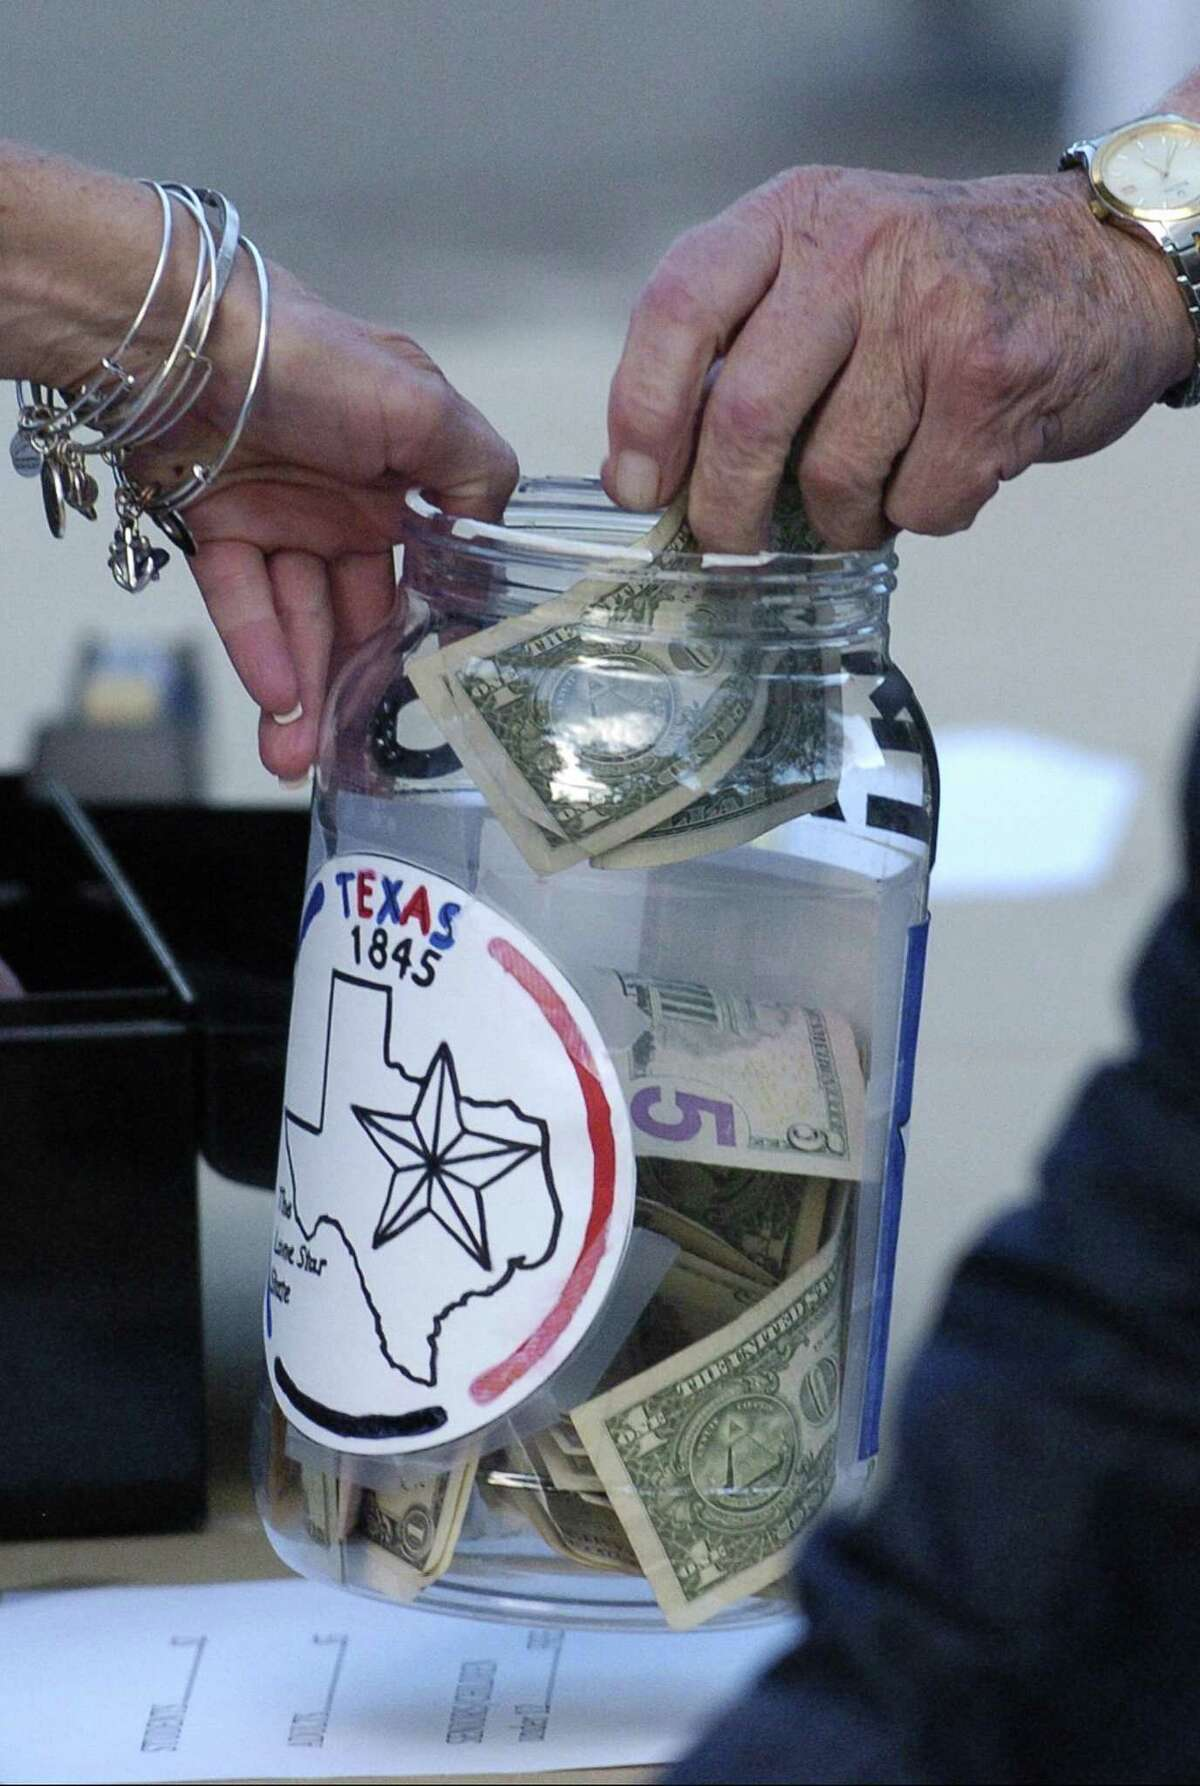 Attendees donate towards relief efforts in Texas, collected in a jar during the football game at Trinity Catholic High School on Friday, Sept. 8, 2017 in Stamford, Connecticut. The school has collected over $10,000 towards relief, that will be distributed through various agencies, such as the American Red Cross.